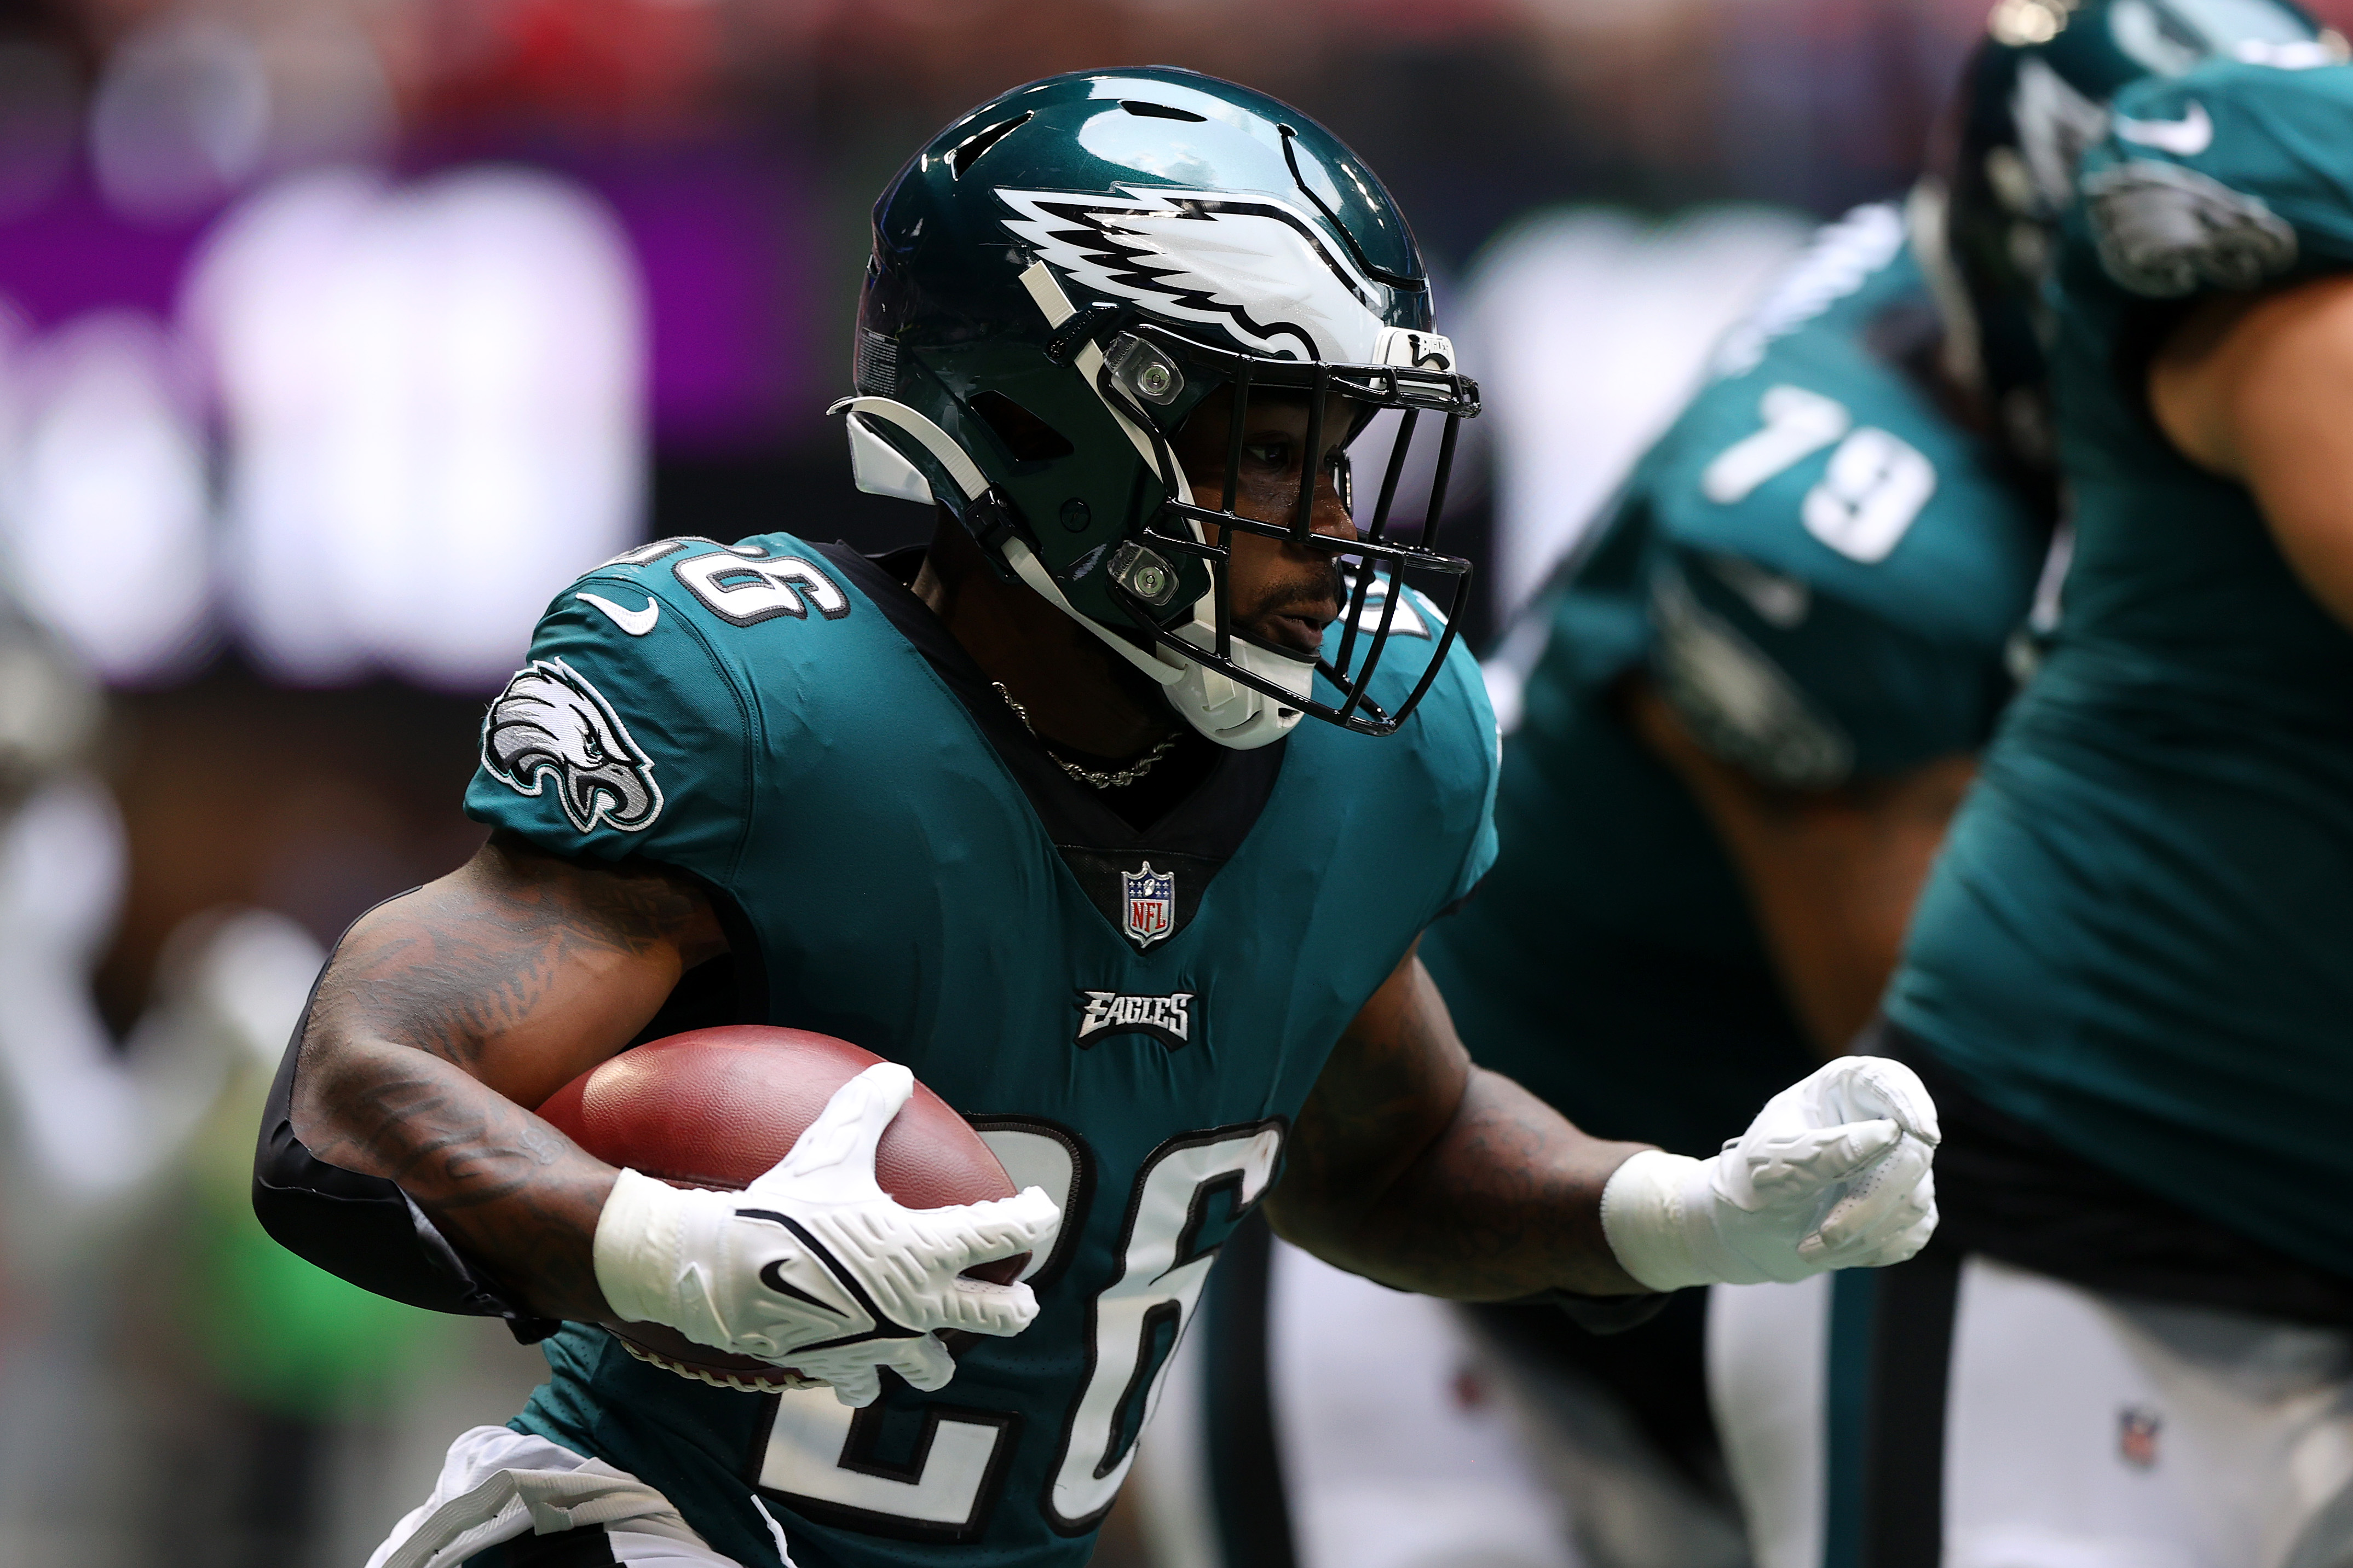 Miles Sanders #26 of the Philadelphia Eagles carries the ball against the Atlanta Falcons during the second quarter at Mercedes-Benz Stadium on September 12, 2021 in Atlanta, Georgia.